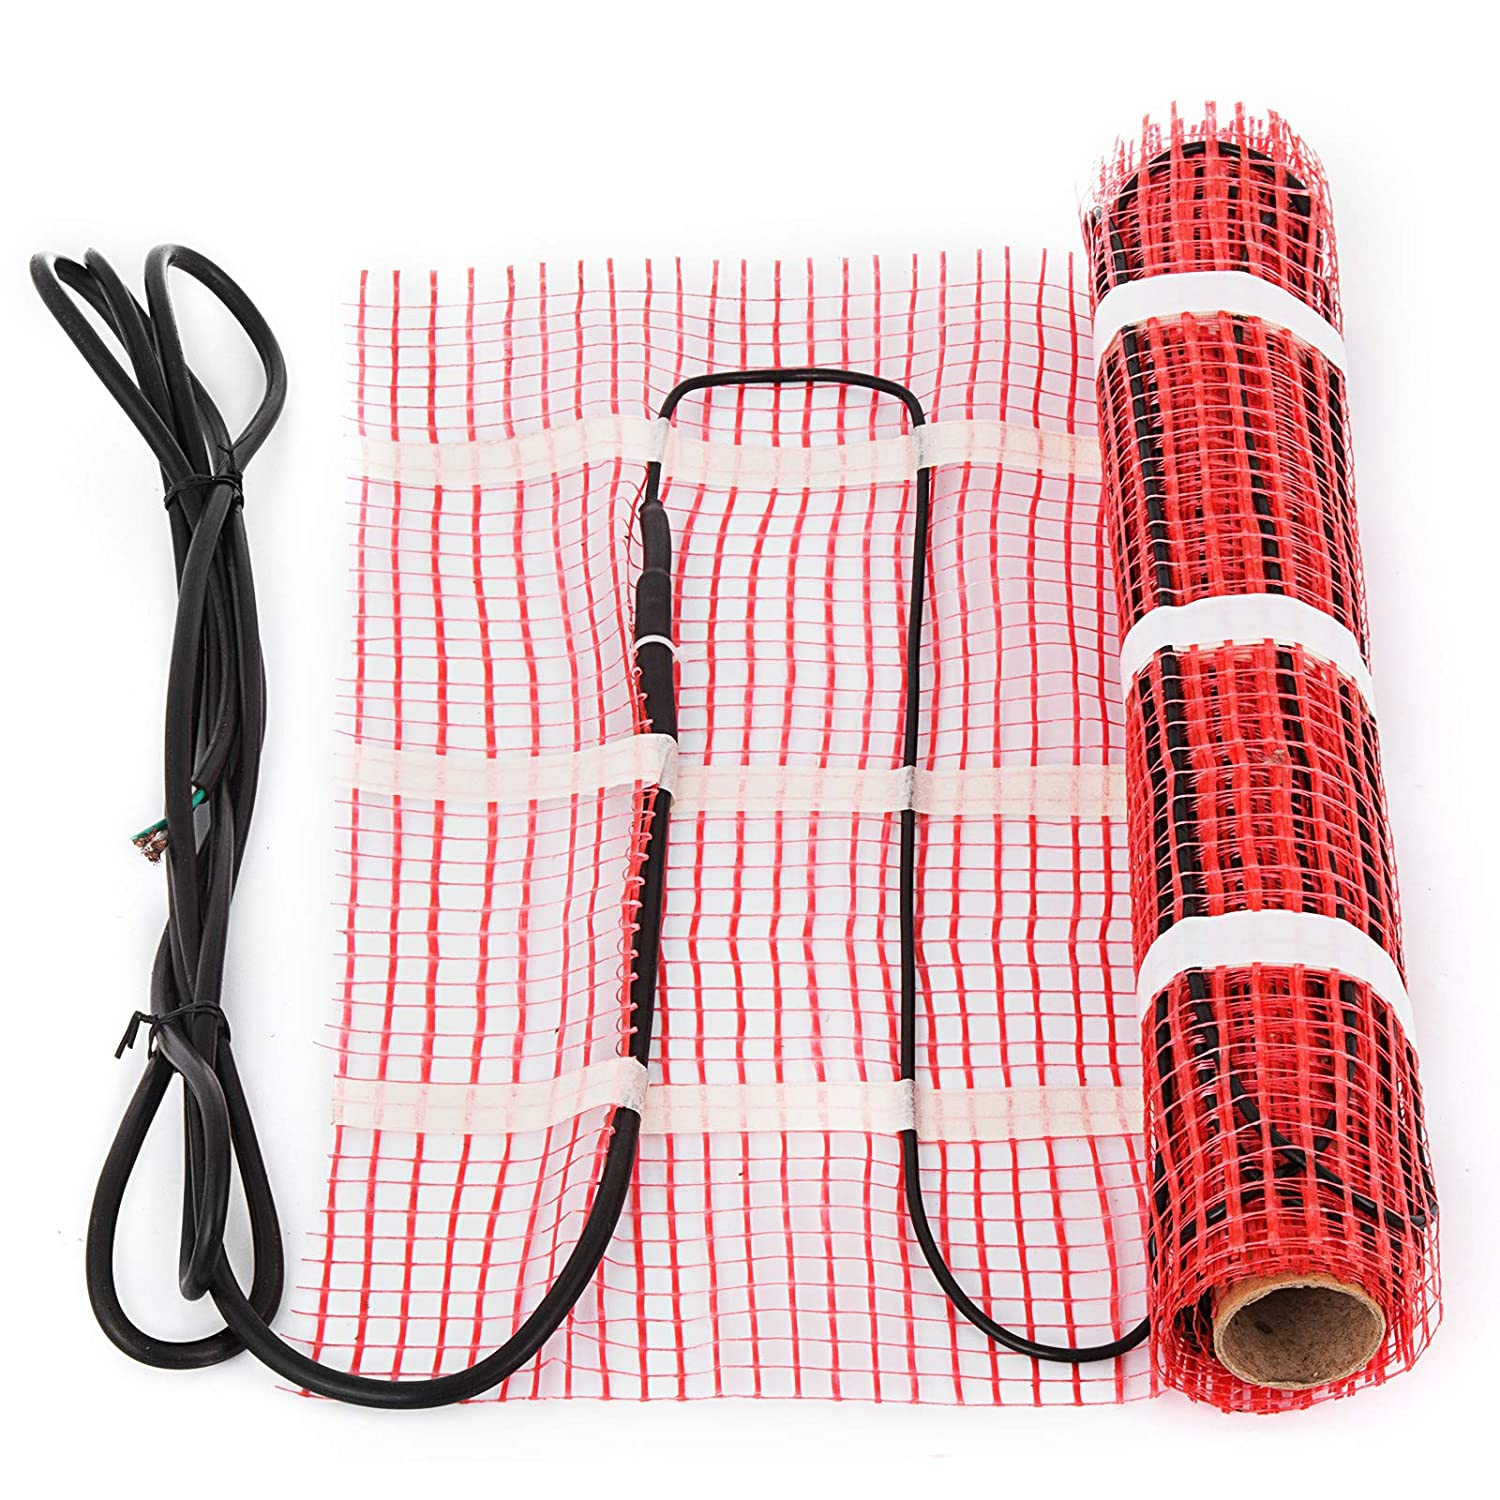 Happybuy 15 Sqft 120V Electric Radiant Floor Heating Mat Self-Adhesive Mesh Floor Heat Mat Underfloor Tiles Home Commercial Radiant Floor Warming Systems Mats (15sqft)